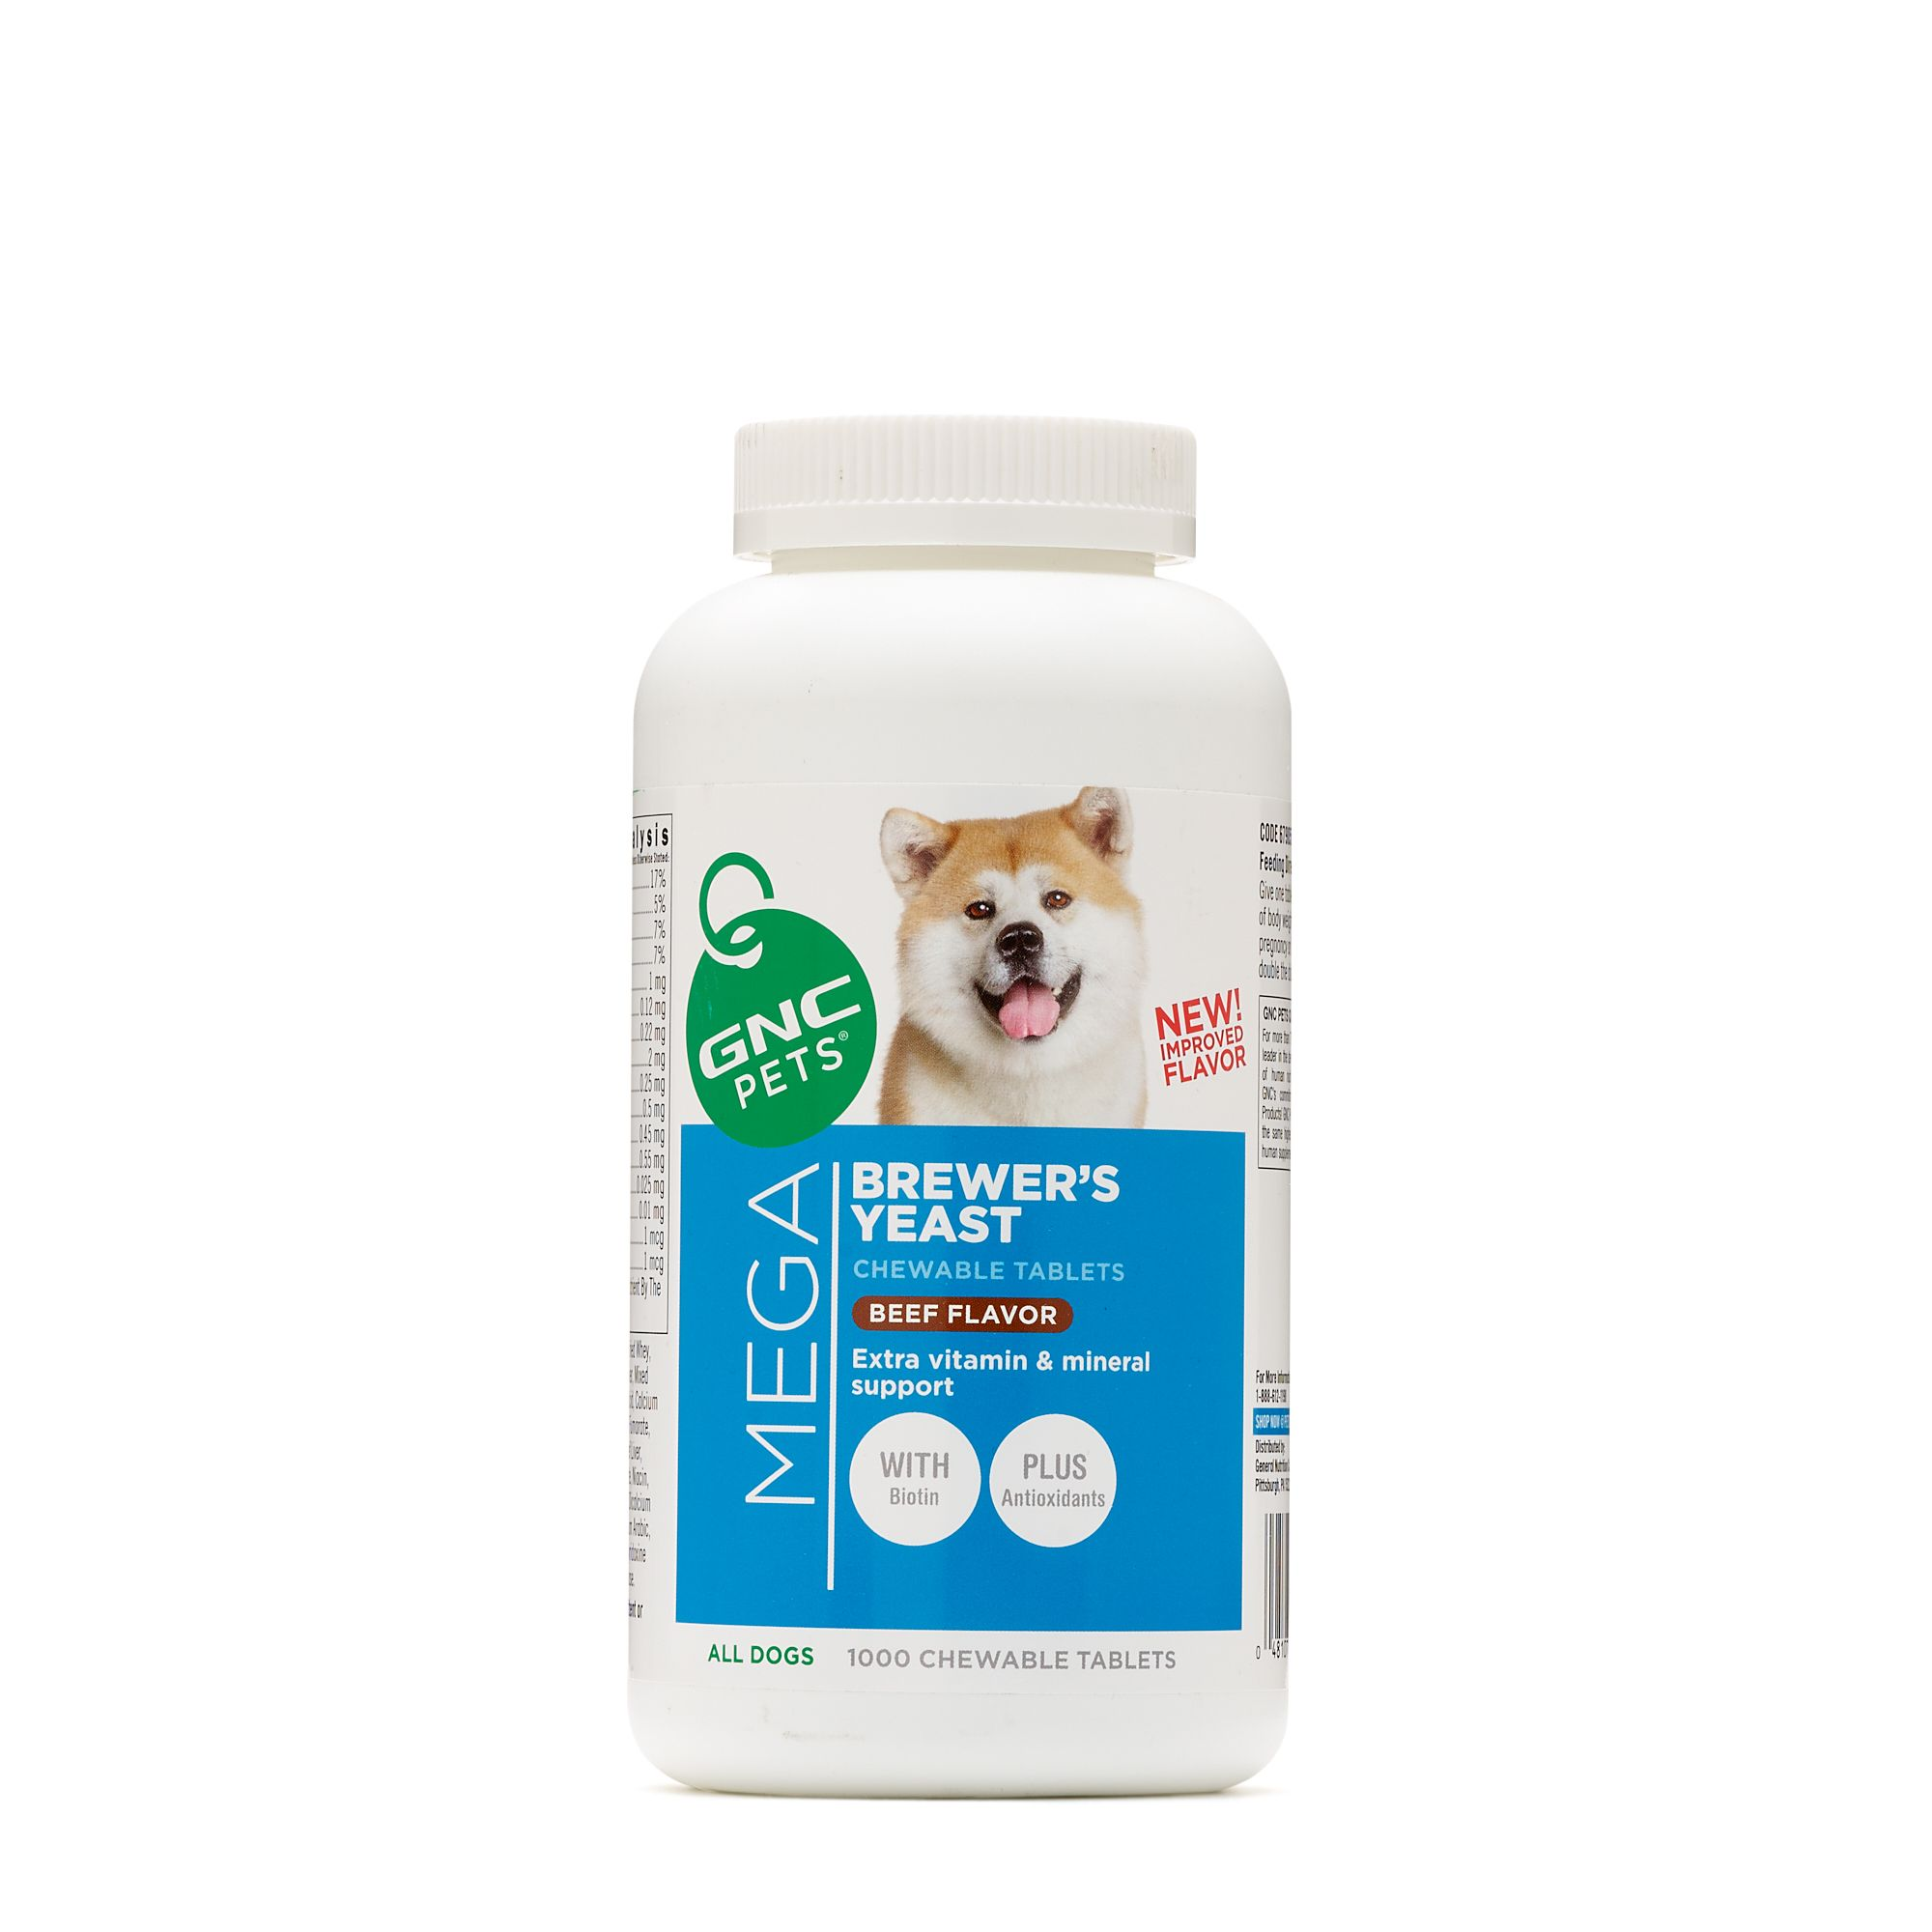 GNC Pets Mega Brewer's Yeast All Dogs Beef Flavor